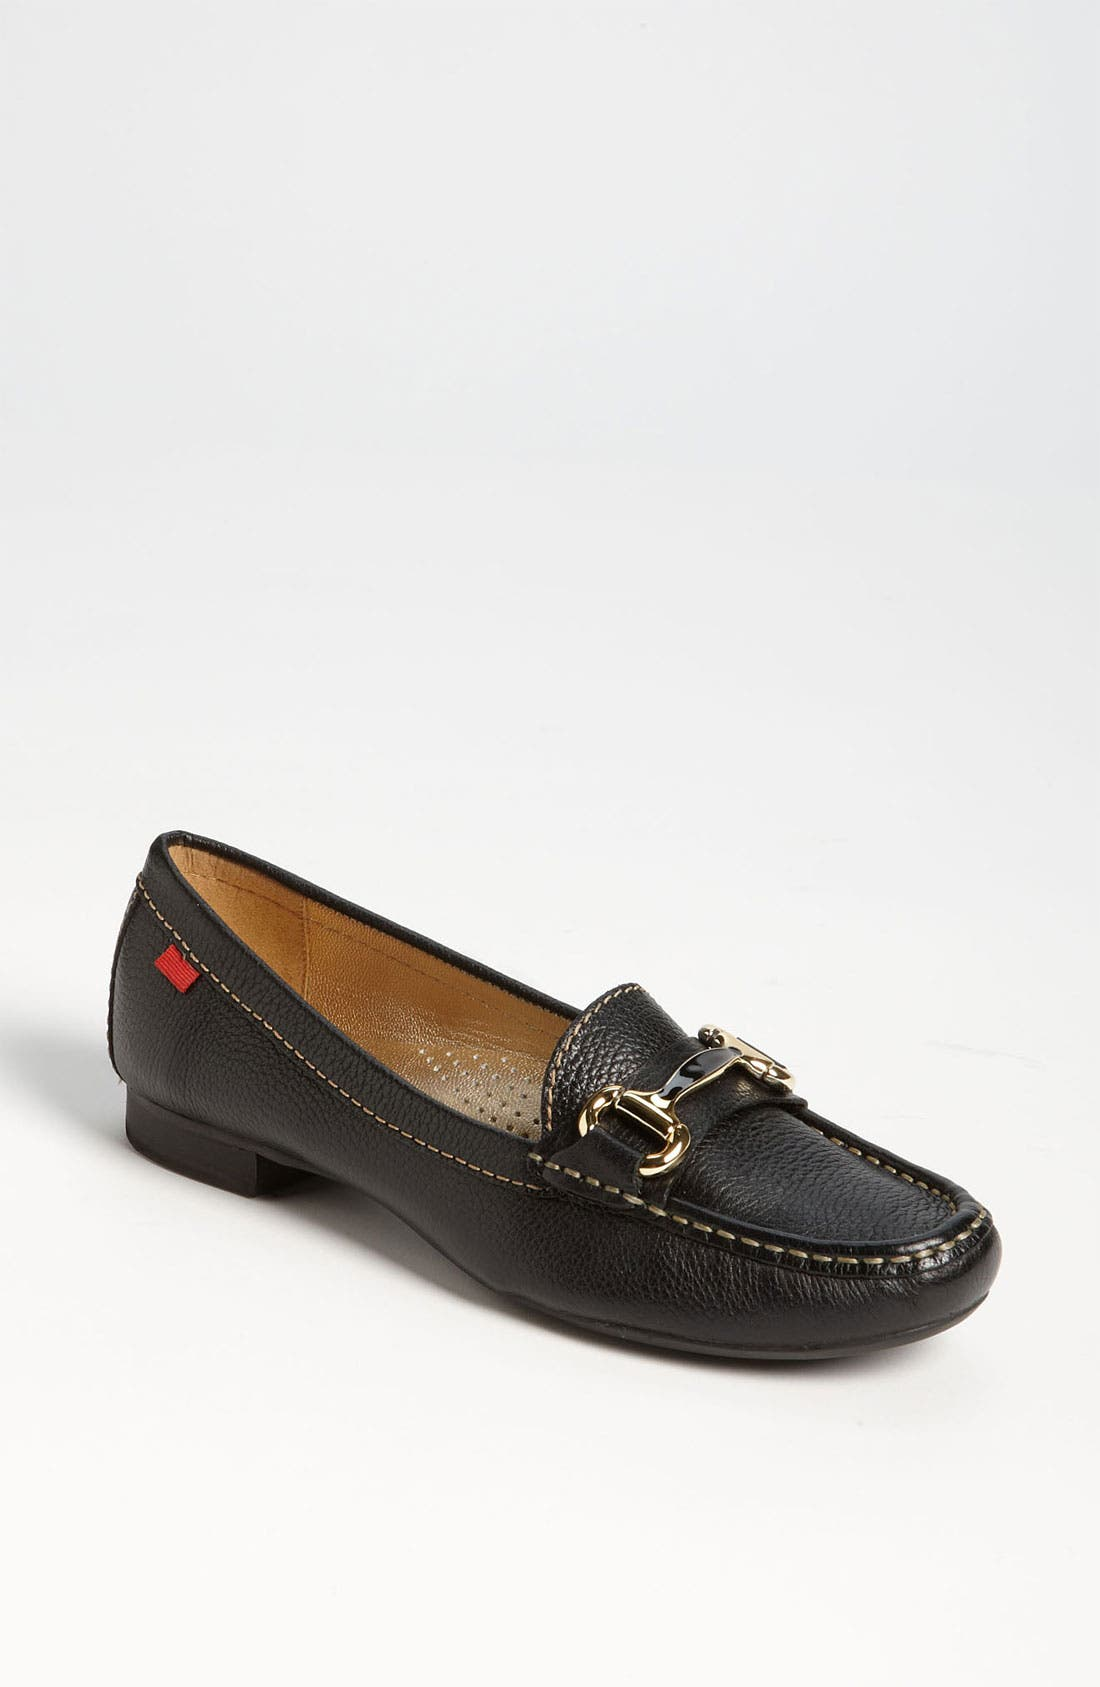 MARC JOSEPH NEW YORK 'Grand St.' Loafer, Main, color, BLACK GRAINY